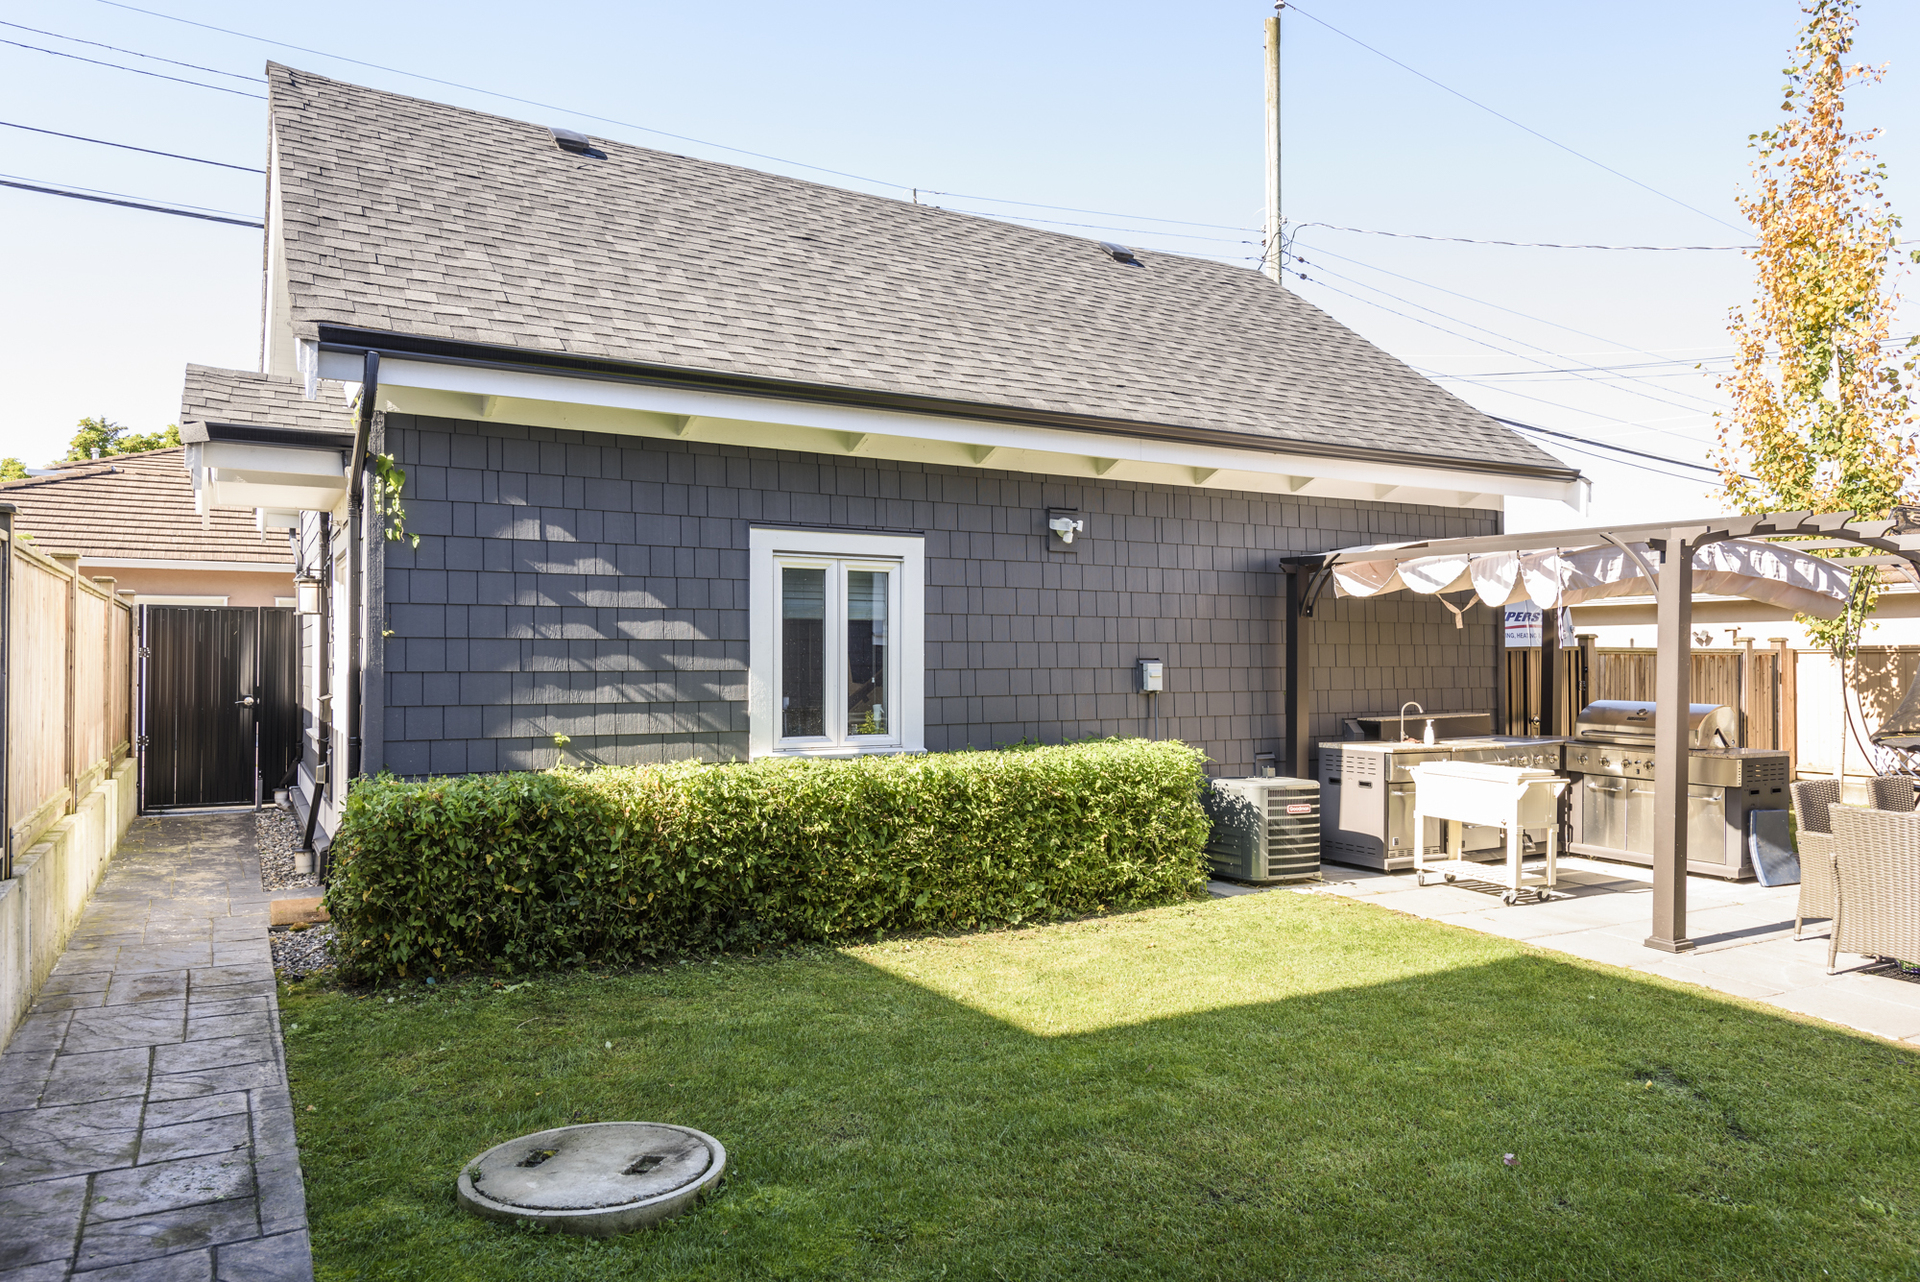 4609-culloden-ste-high-res-129 at 4609 Culloden Street, Knight, Vancouver East